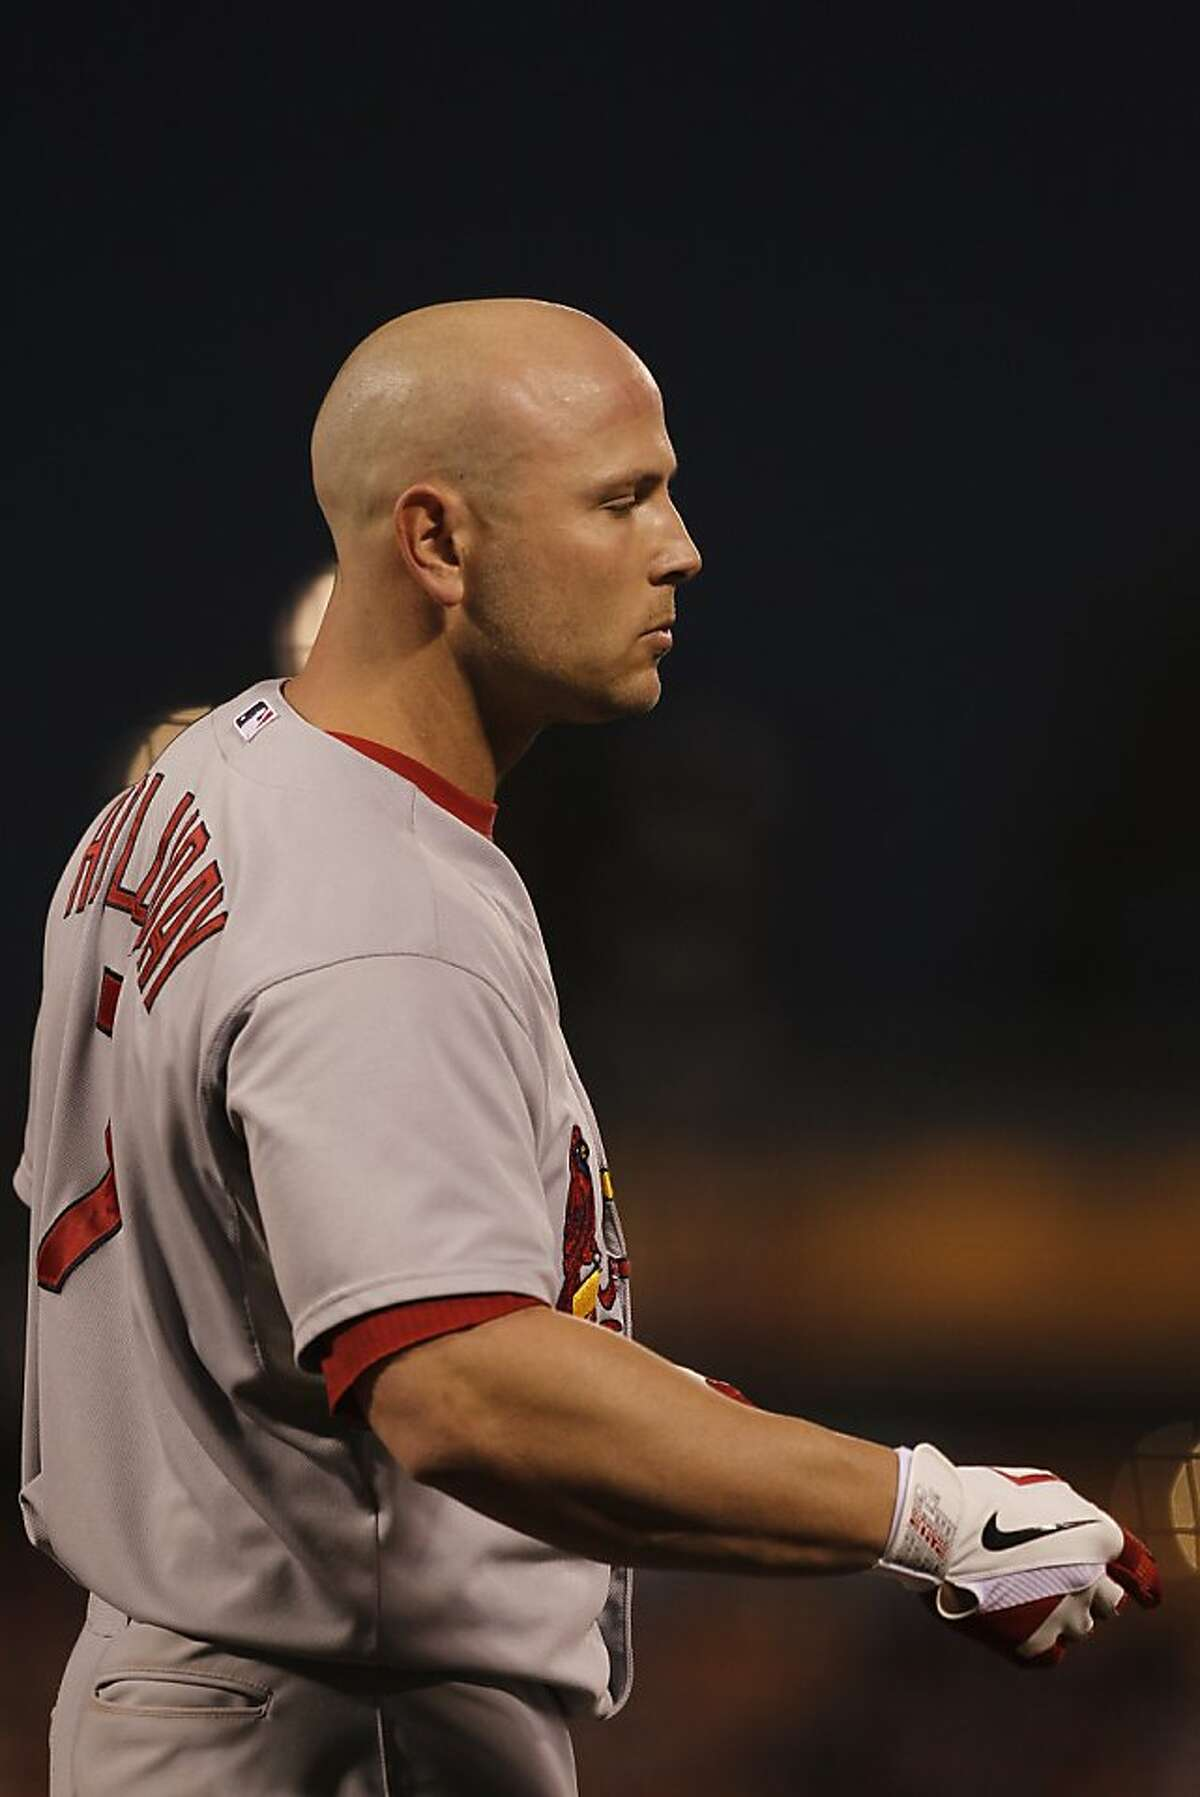 Cardinals' outfielder Matt Holliday is seen during game 2 of the NLCS at AT&T Park on Monday, Oct. 15, 2012 in San Francisco, Calif.